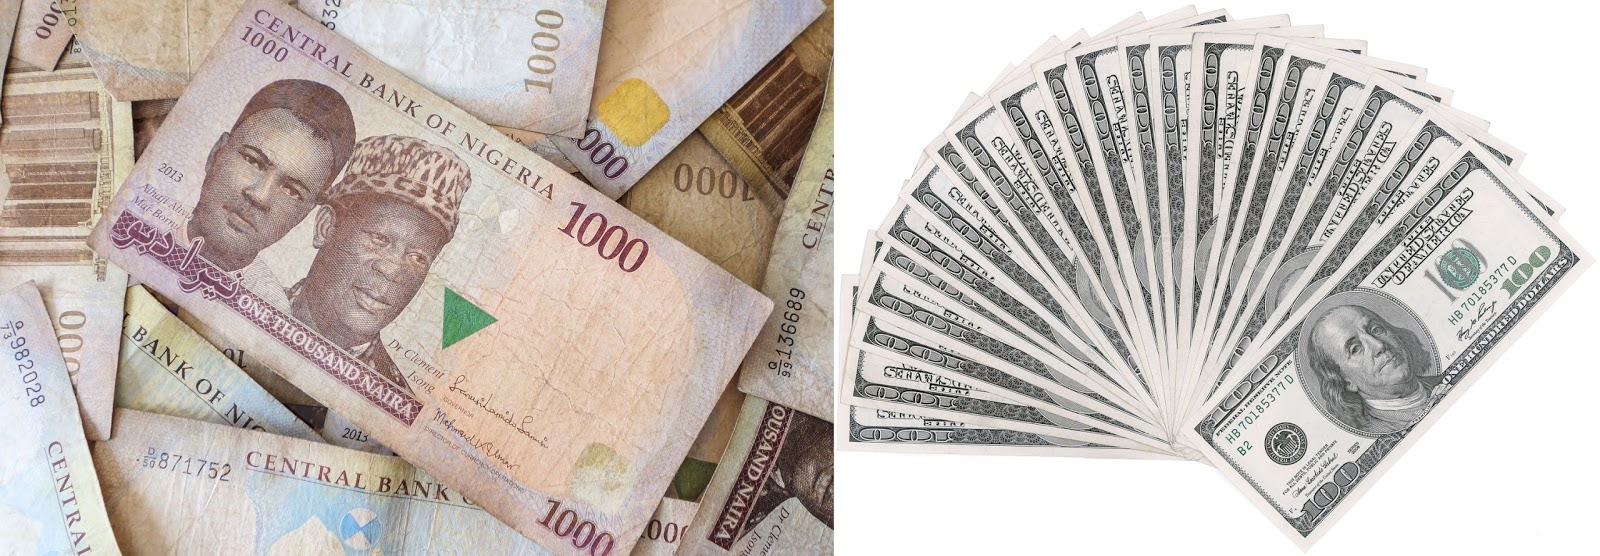 bureau de change operators express worry as naira crashes further against dollar welcome to